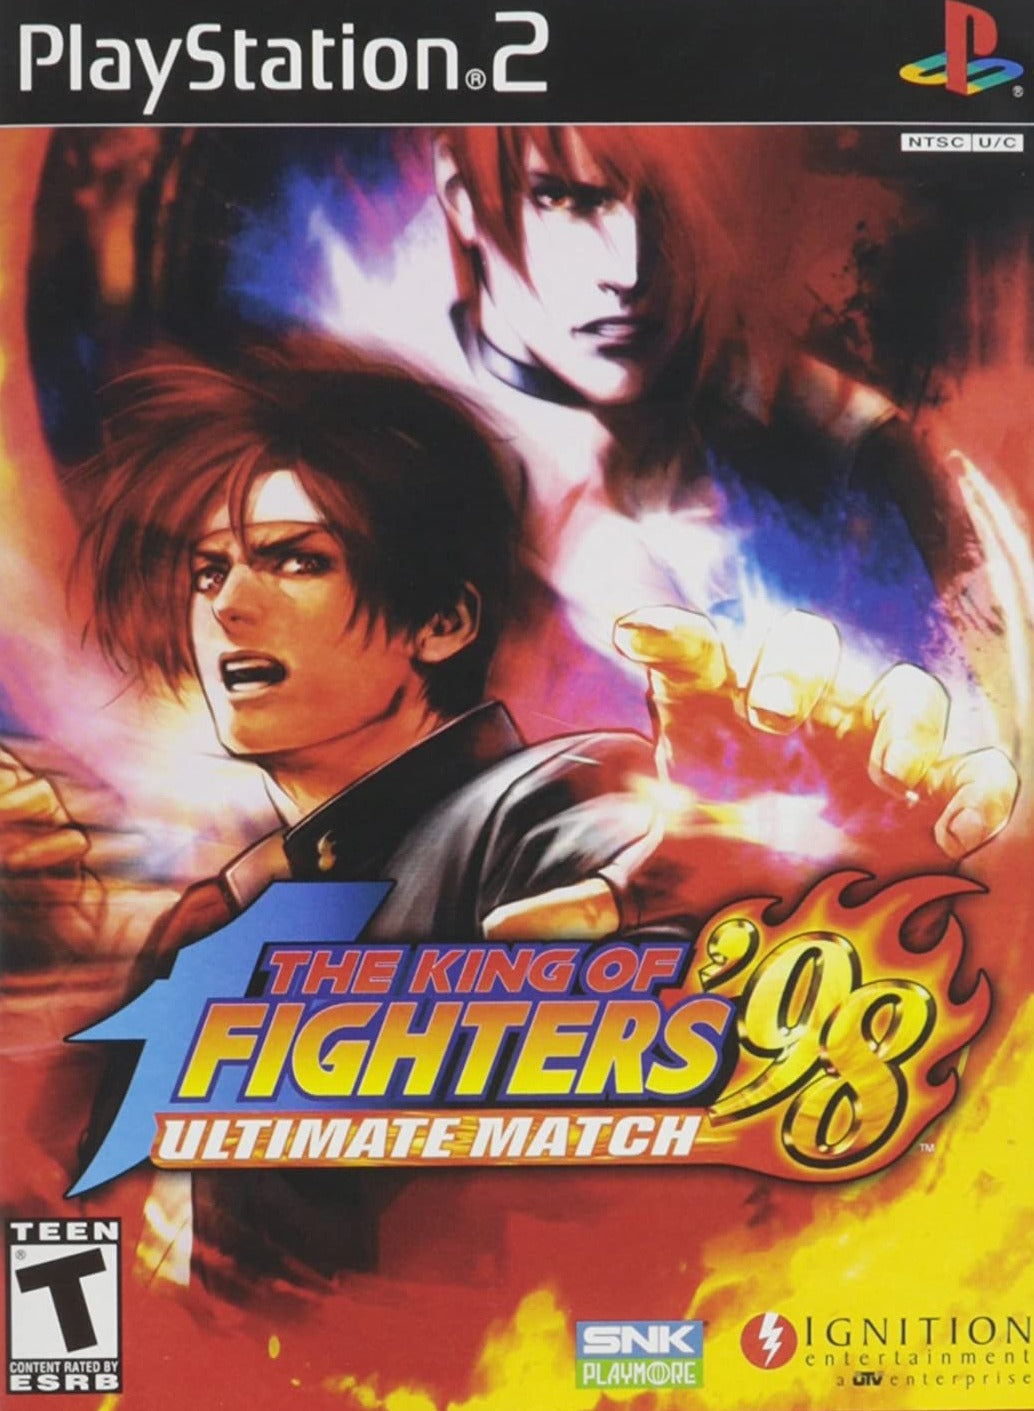 PS2 The King Fighters Ultimate Match 98 T784